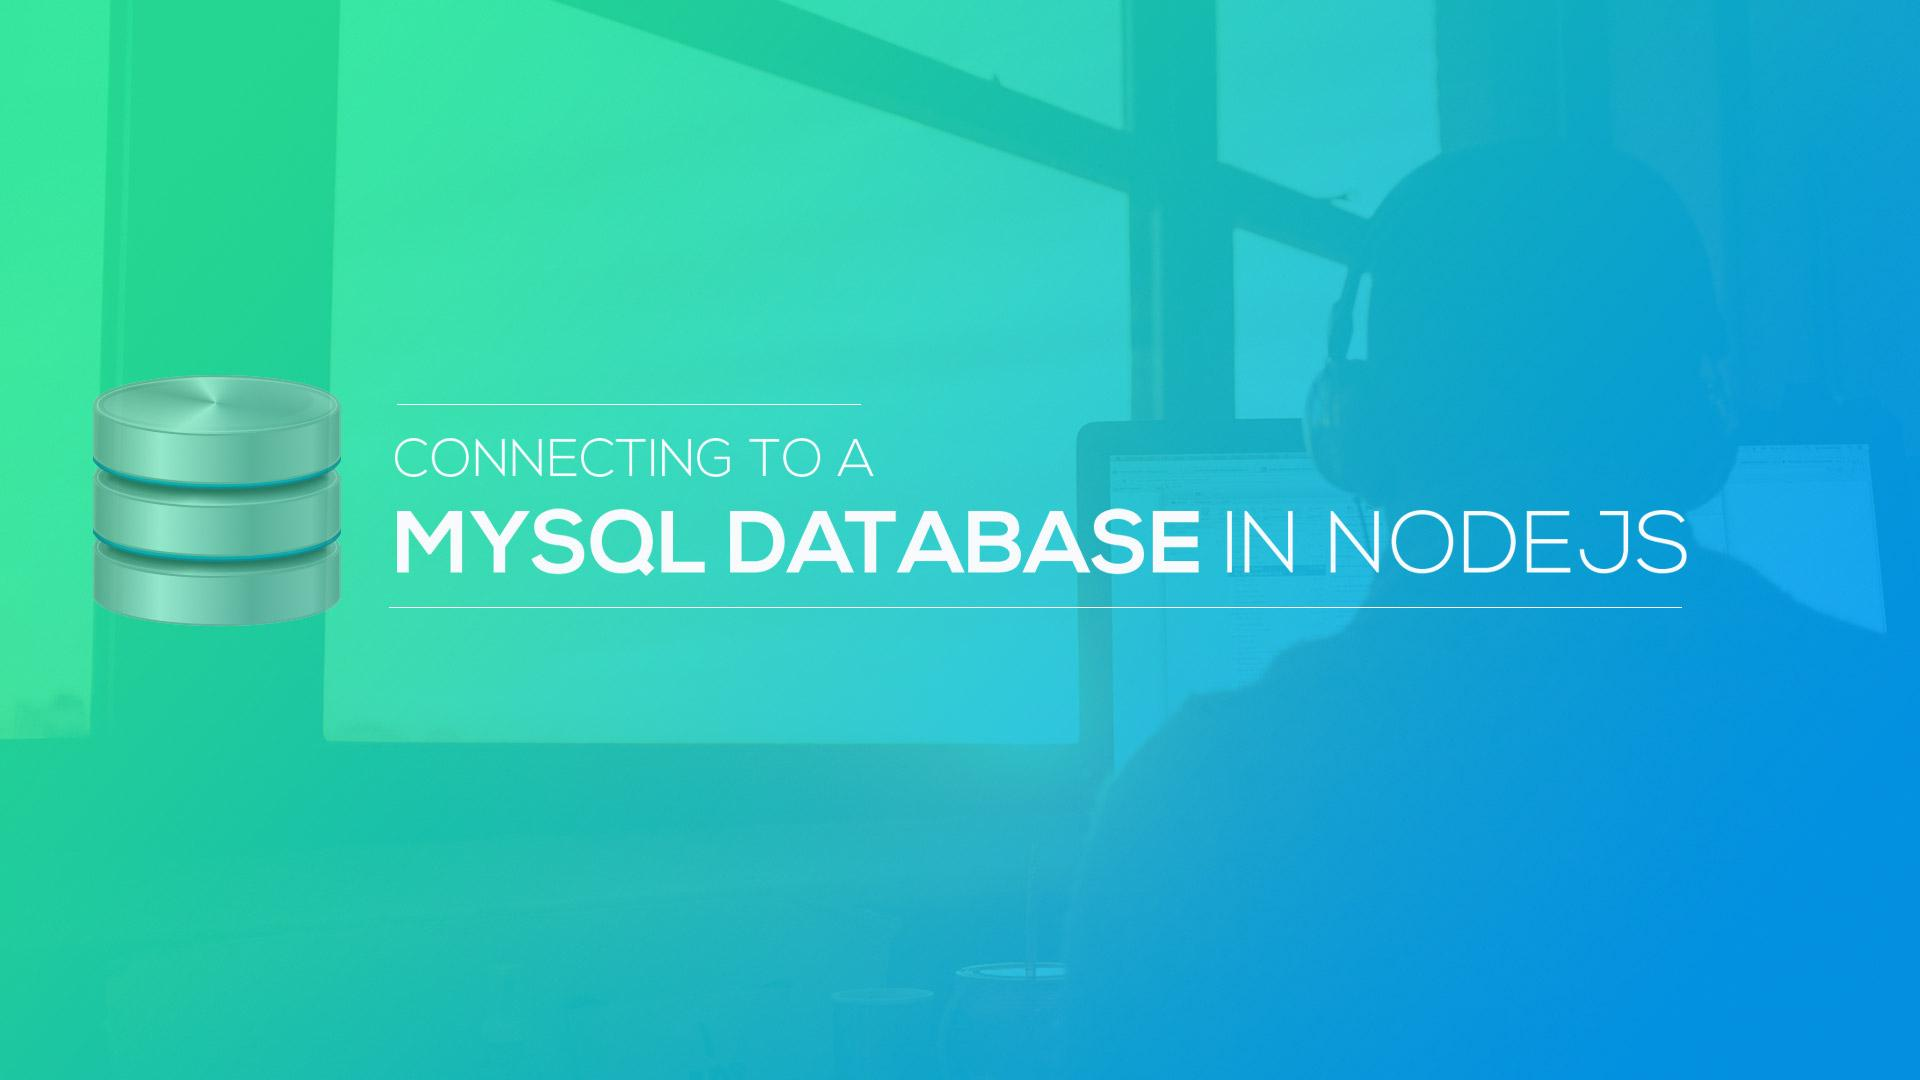 Connecting to a MySQL database in NodeJS